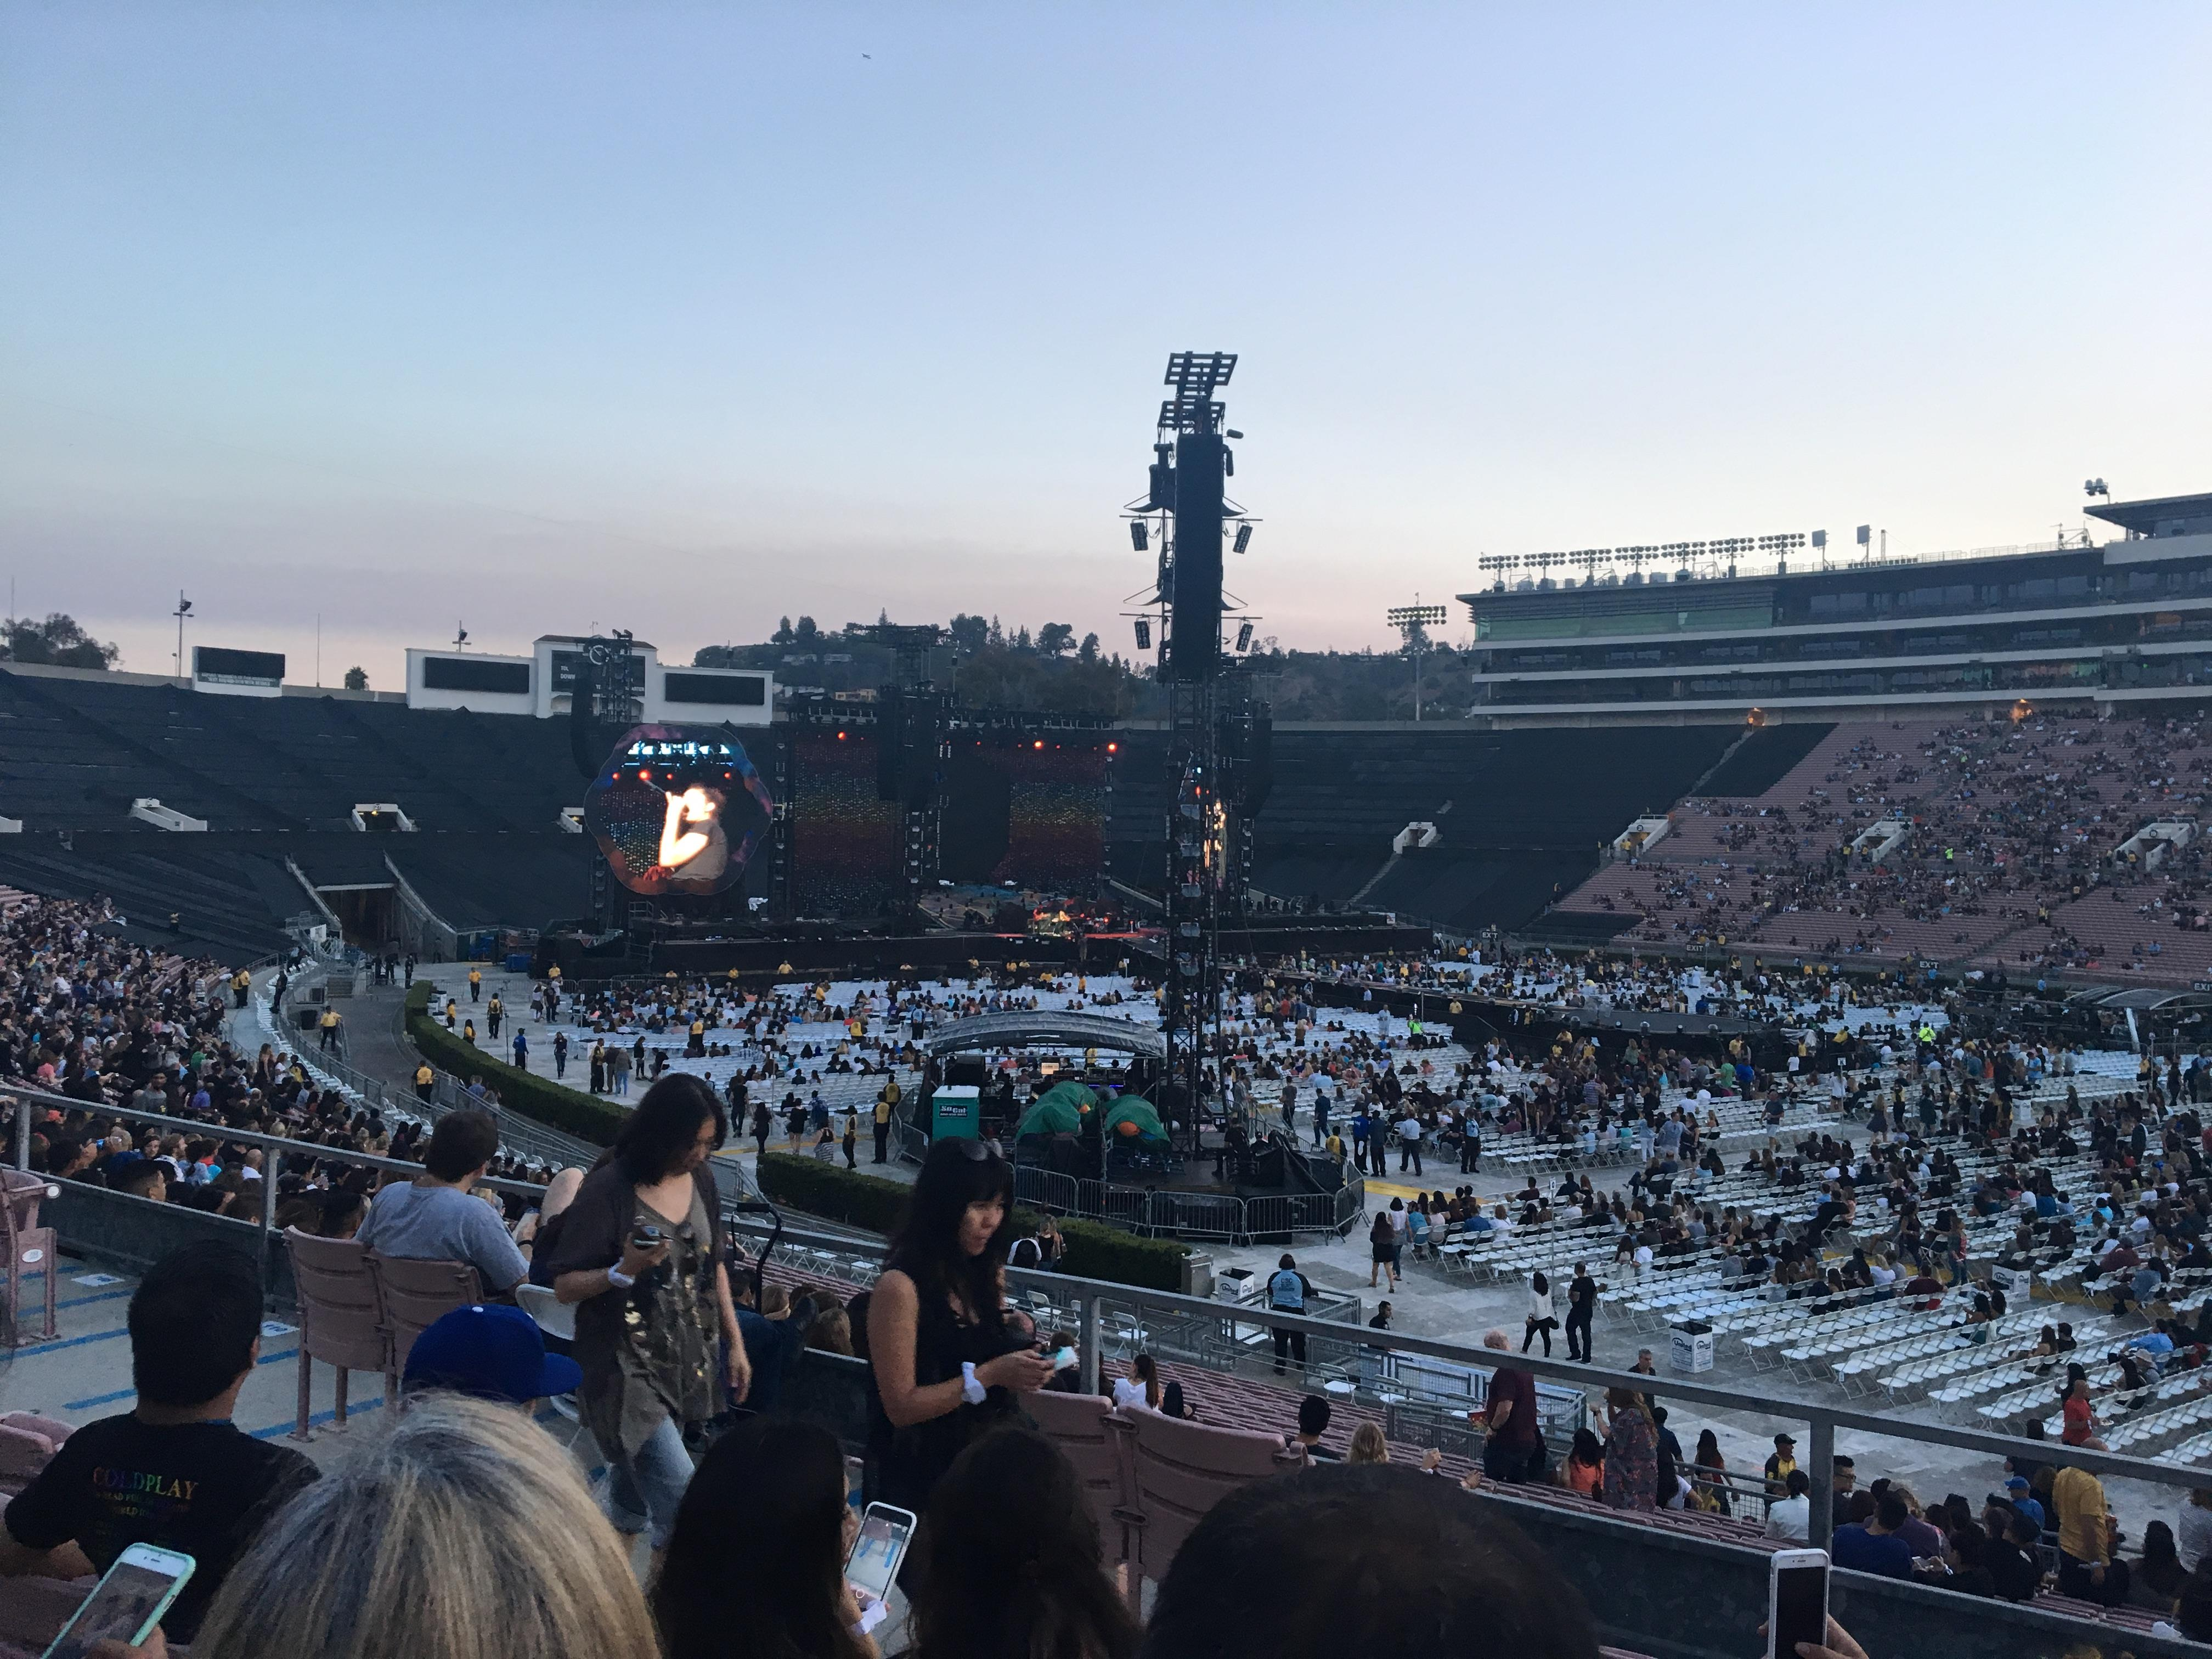 Rose Bowl Section 8-L Row 33 Seat 3